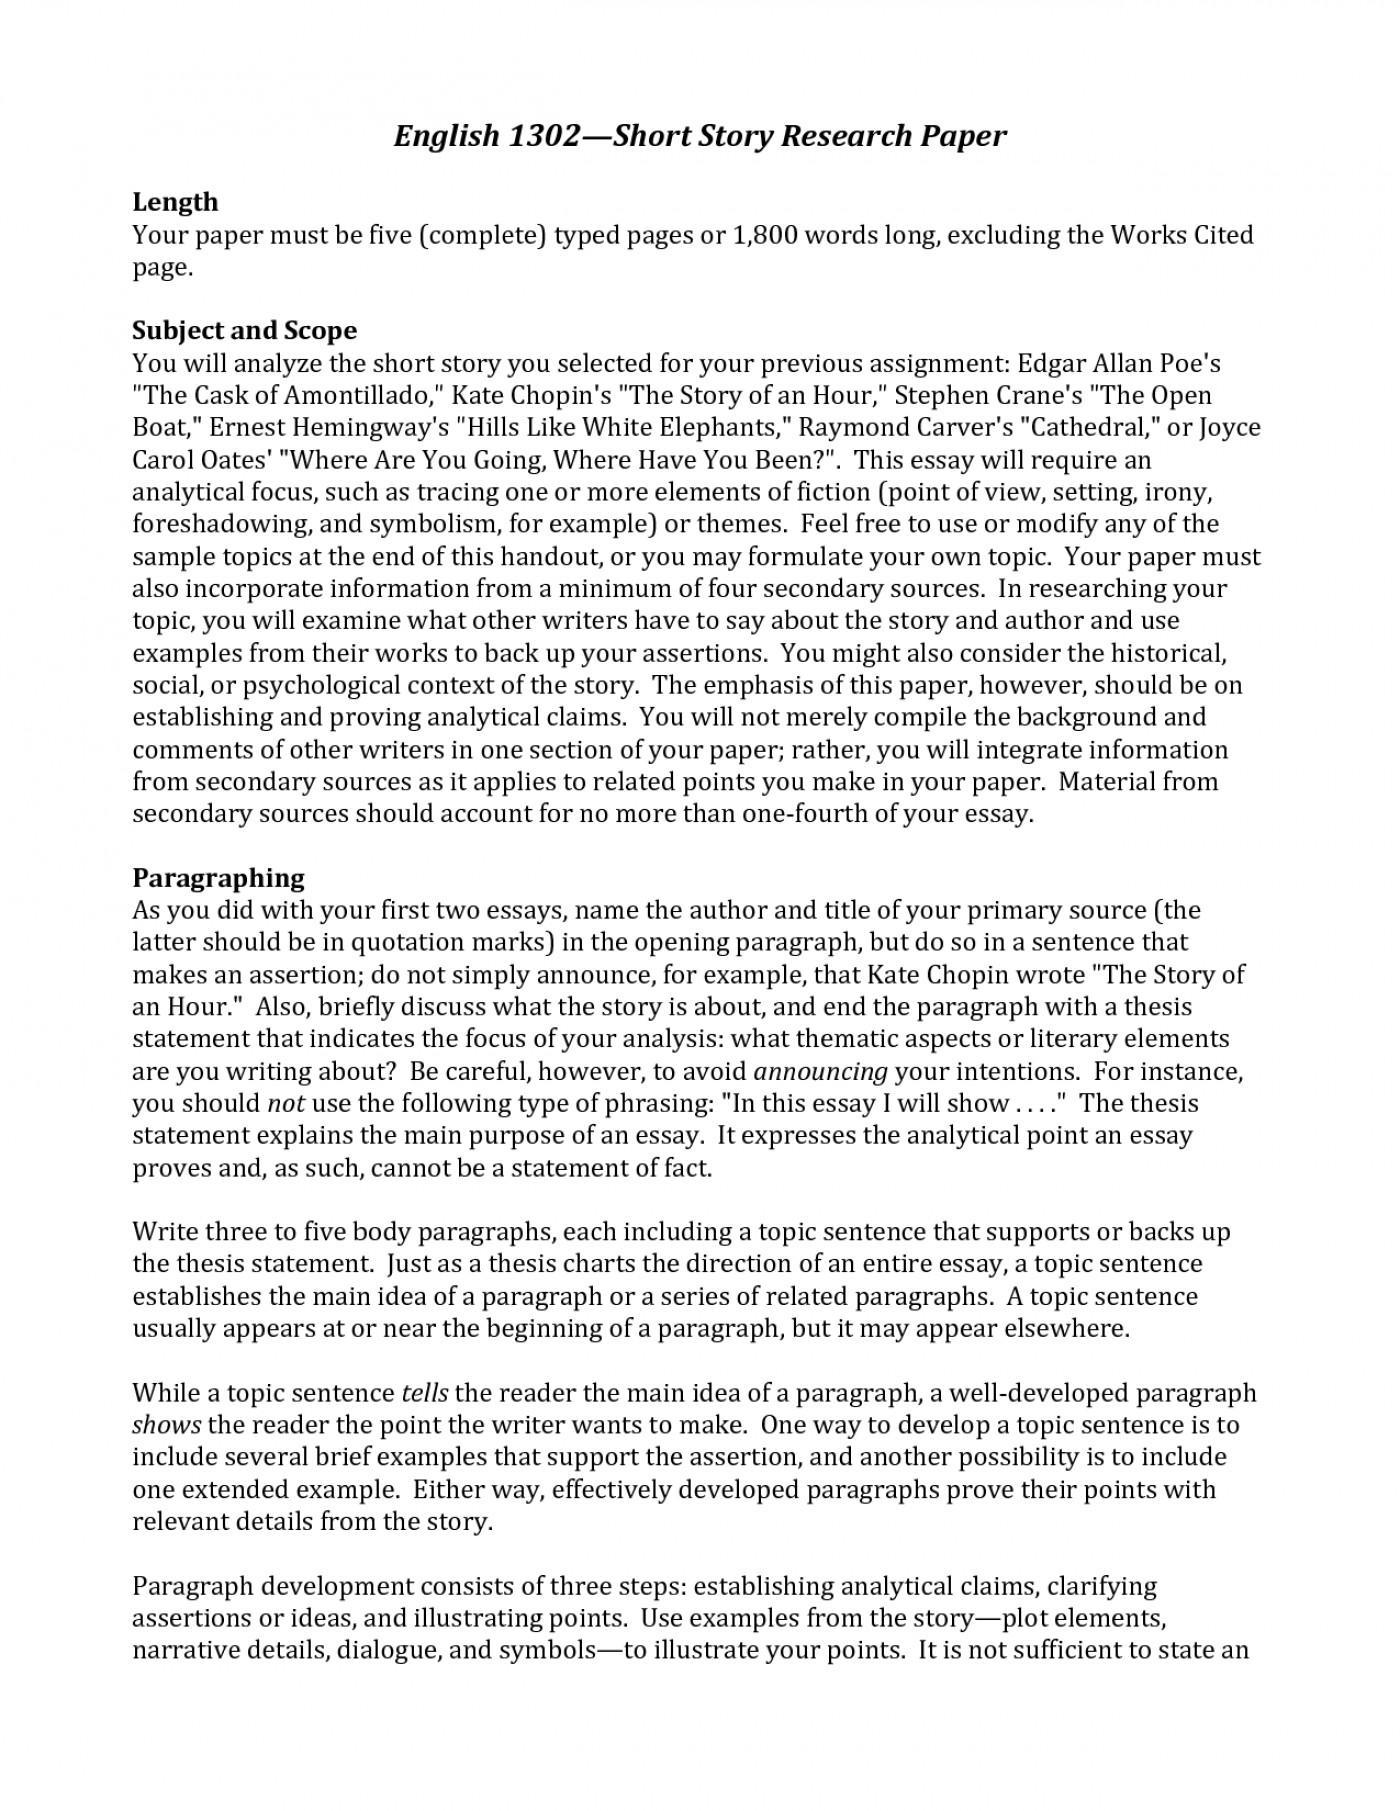 002 Ideas For Research Fascinating Paper Papers In Computer Science Middle School 1400